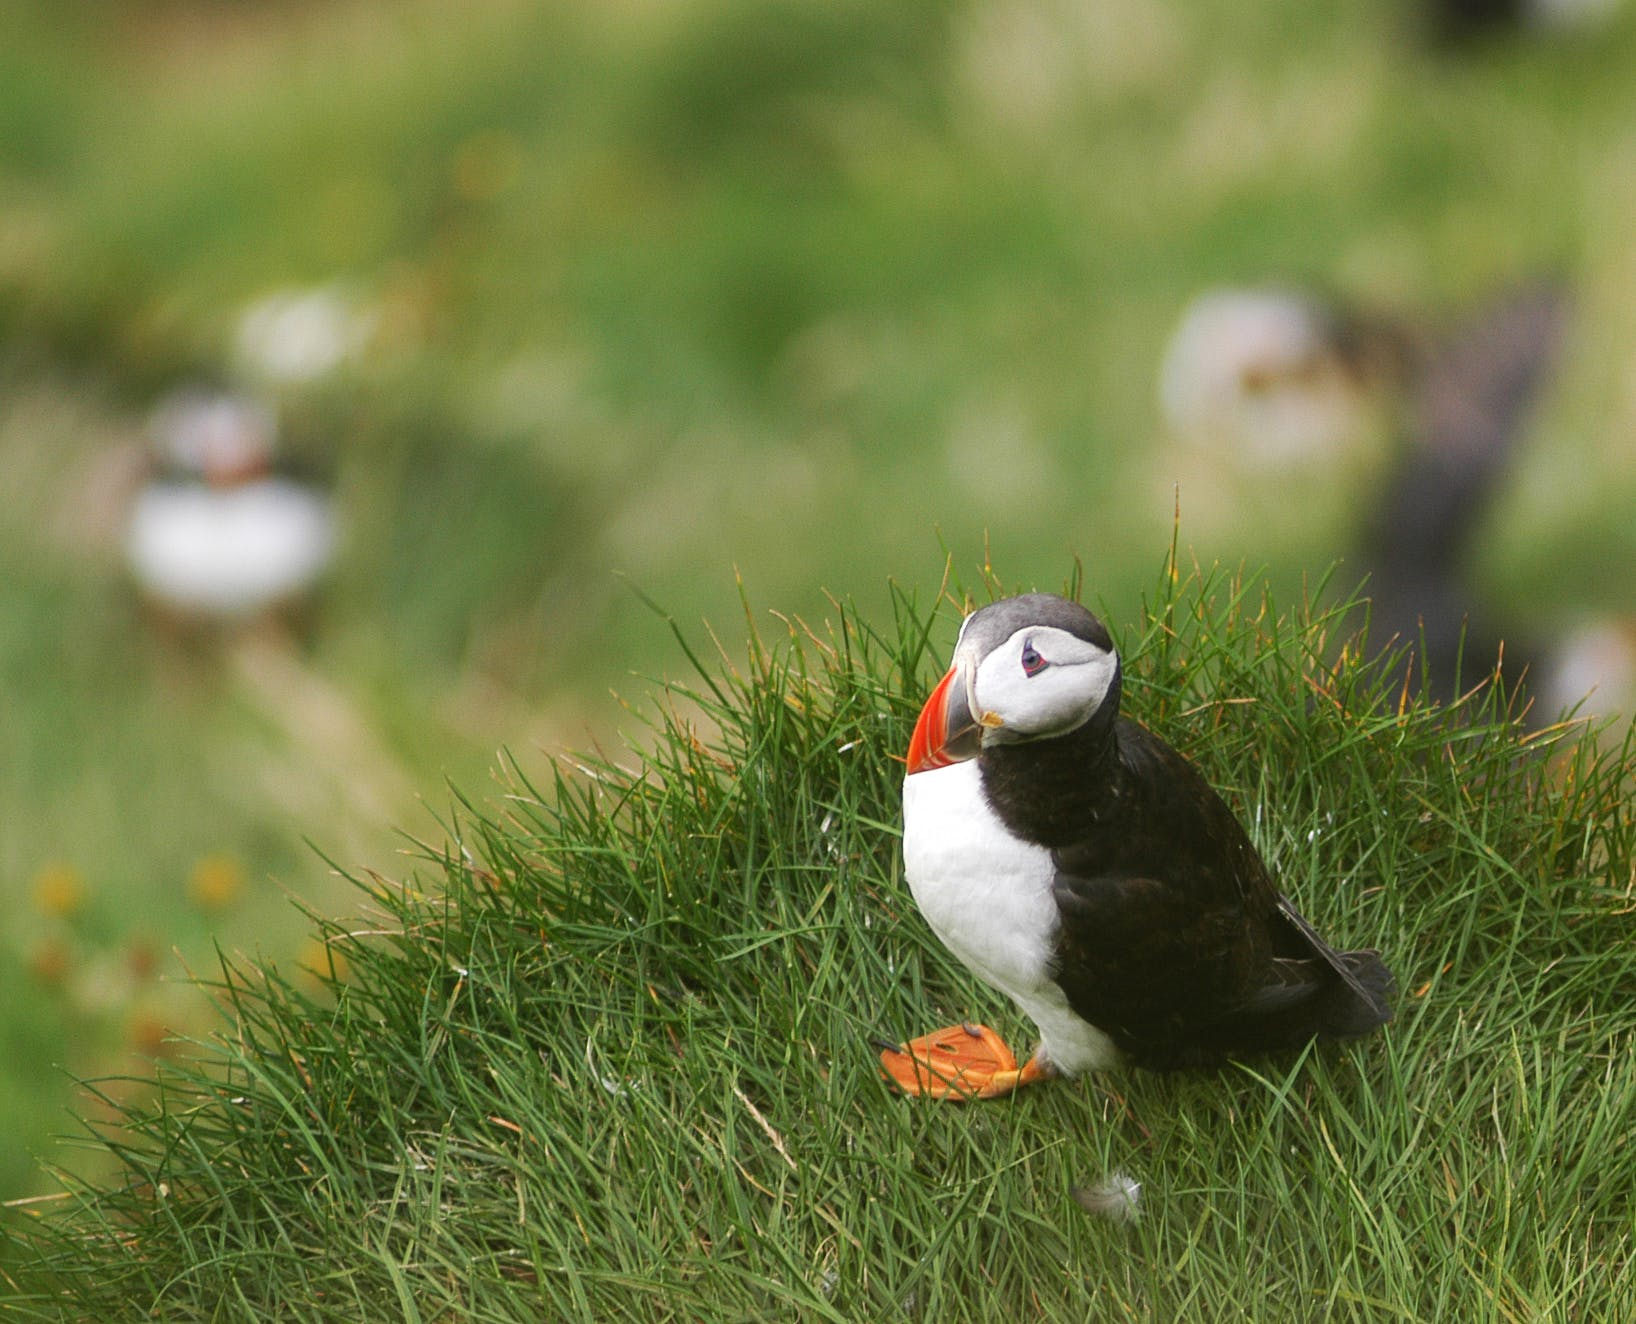 3 Day Animals of Iceland Tour with Horse Riding plus Whale & Puffin Watching near Reykjavik - day 3